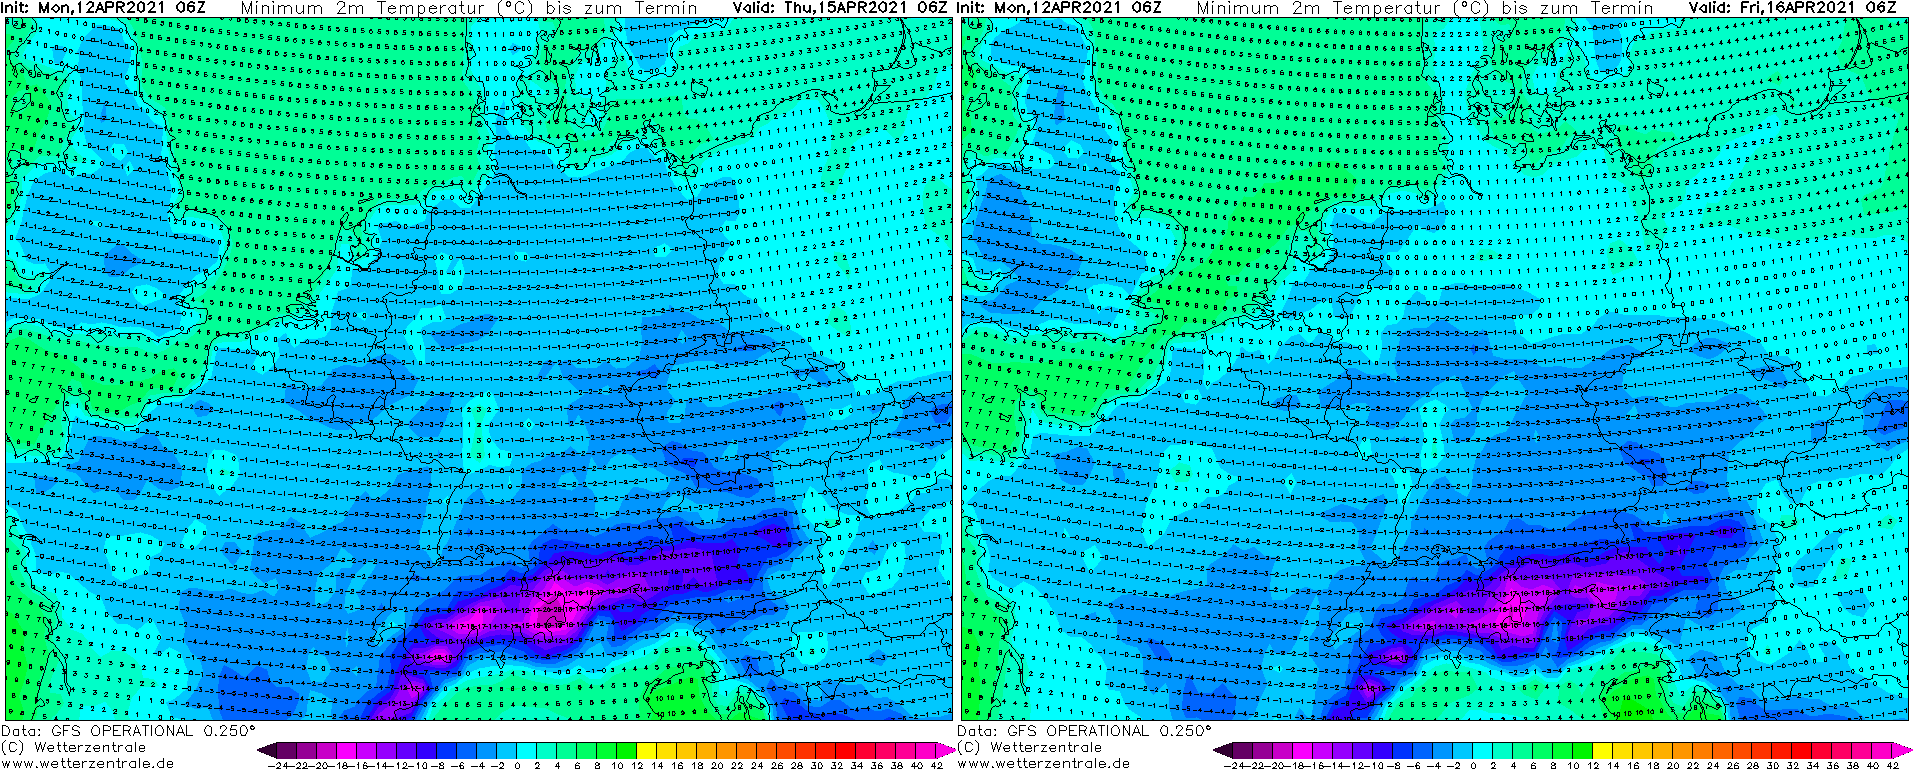 new-cold-wave-europe-snow-frost-damage-temperatures-thursday-friday